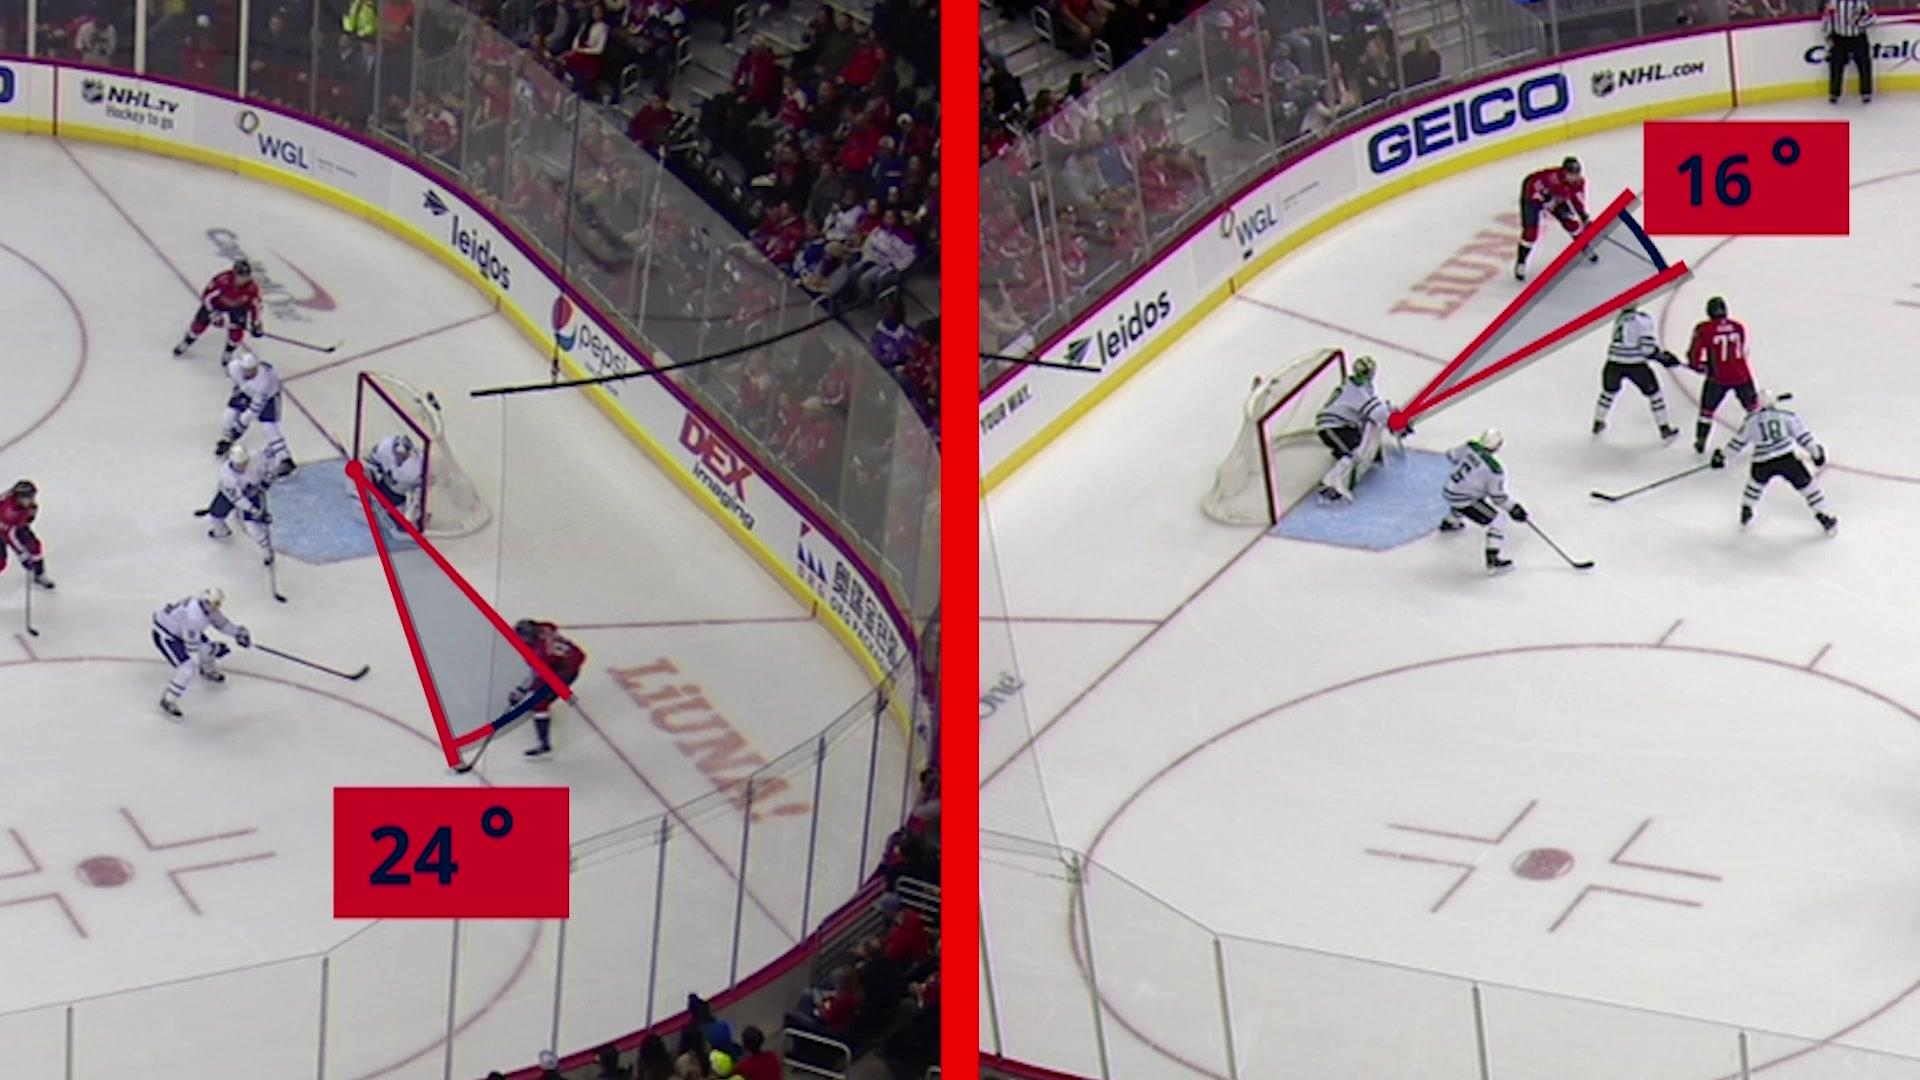 bdeec529880 Kuzy had us reminiscing about a similar goal made against Toronto in Oct.